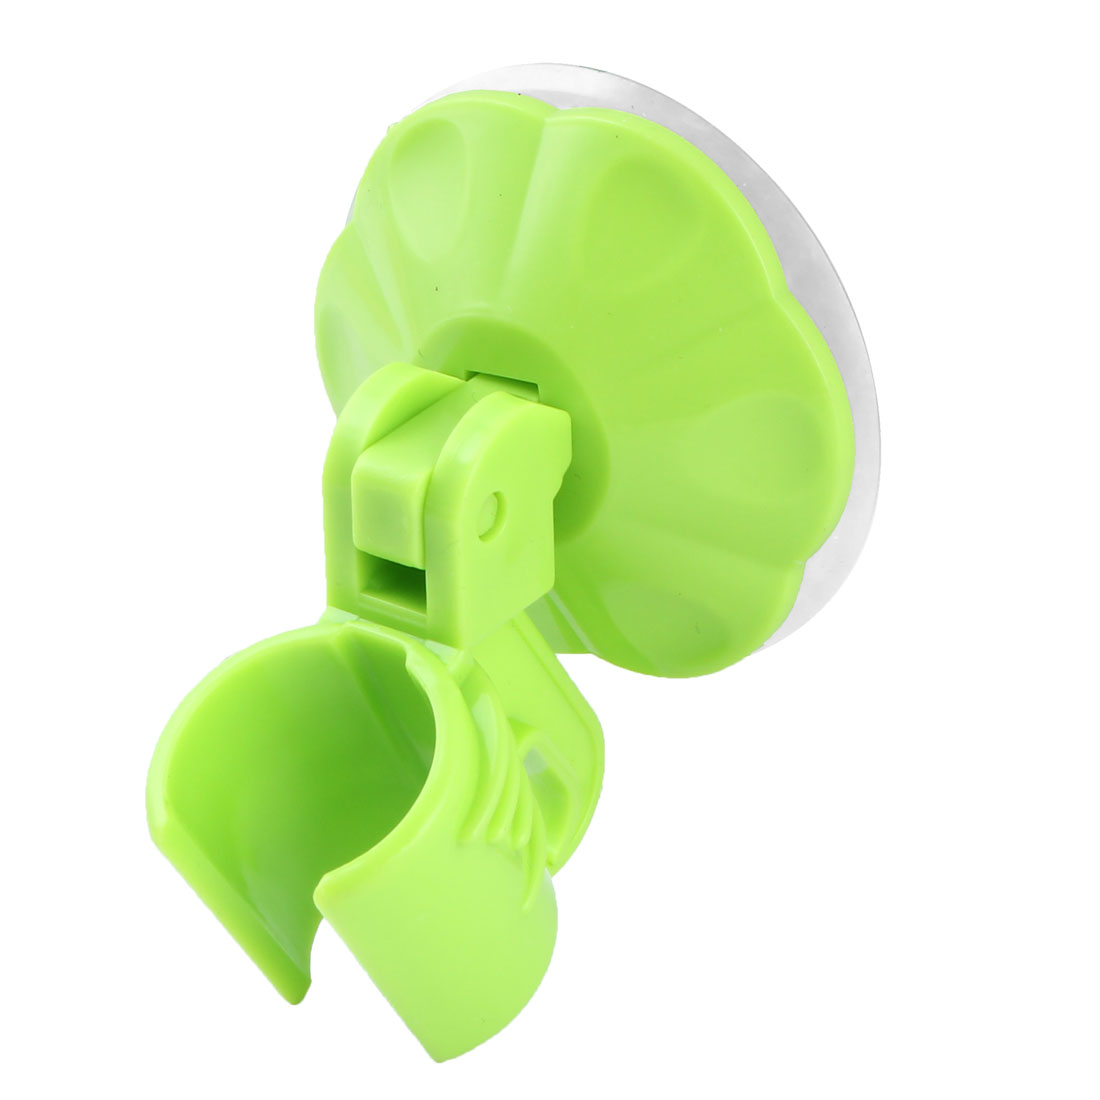 Household Bathroom Plastic Suction Cup Adjustable Shower Head Holder Green